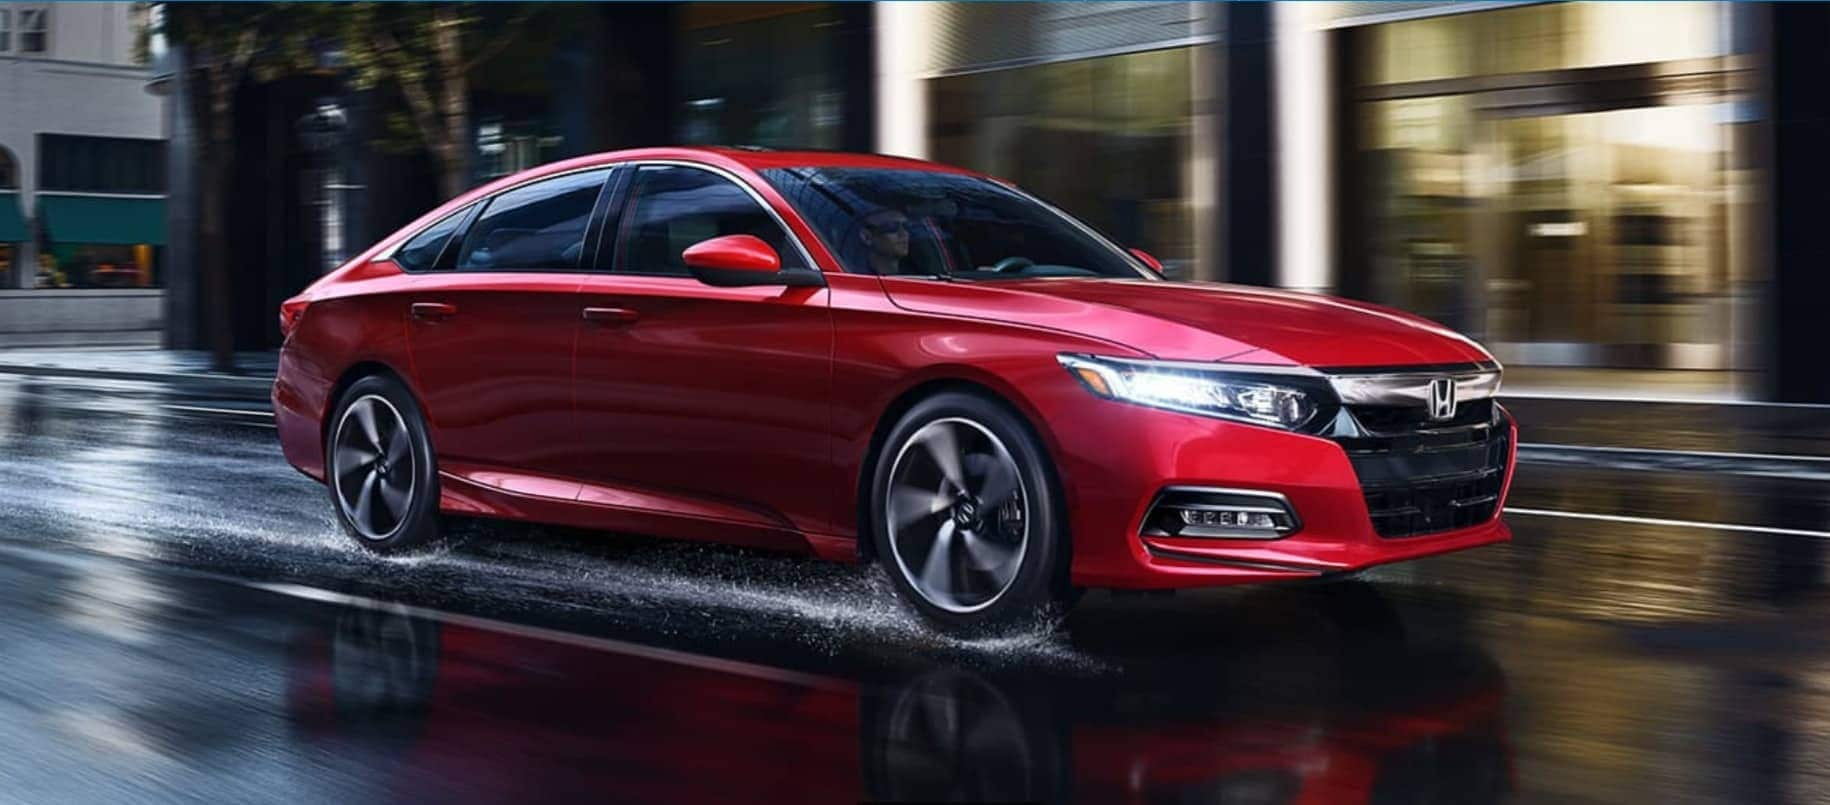 What's new with the 2020 Honda Accord near Milledgeville GA